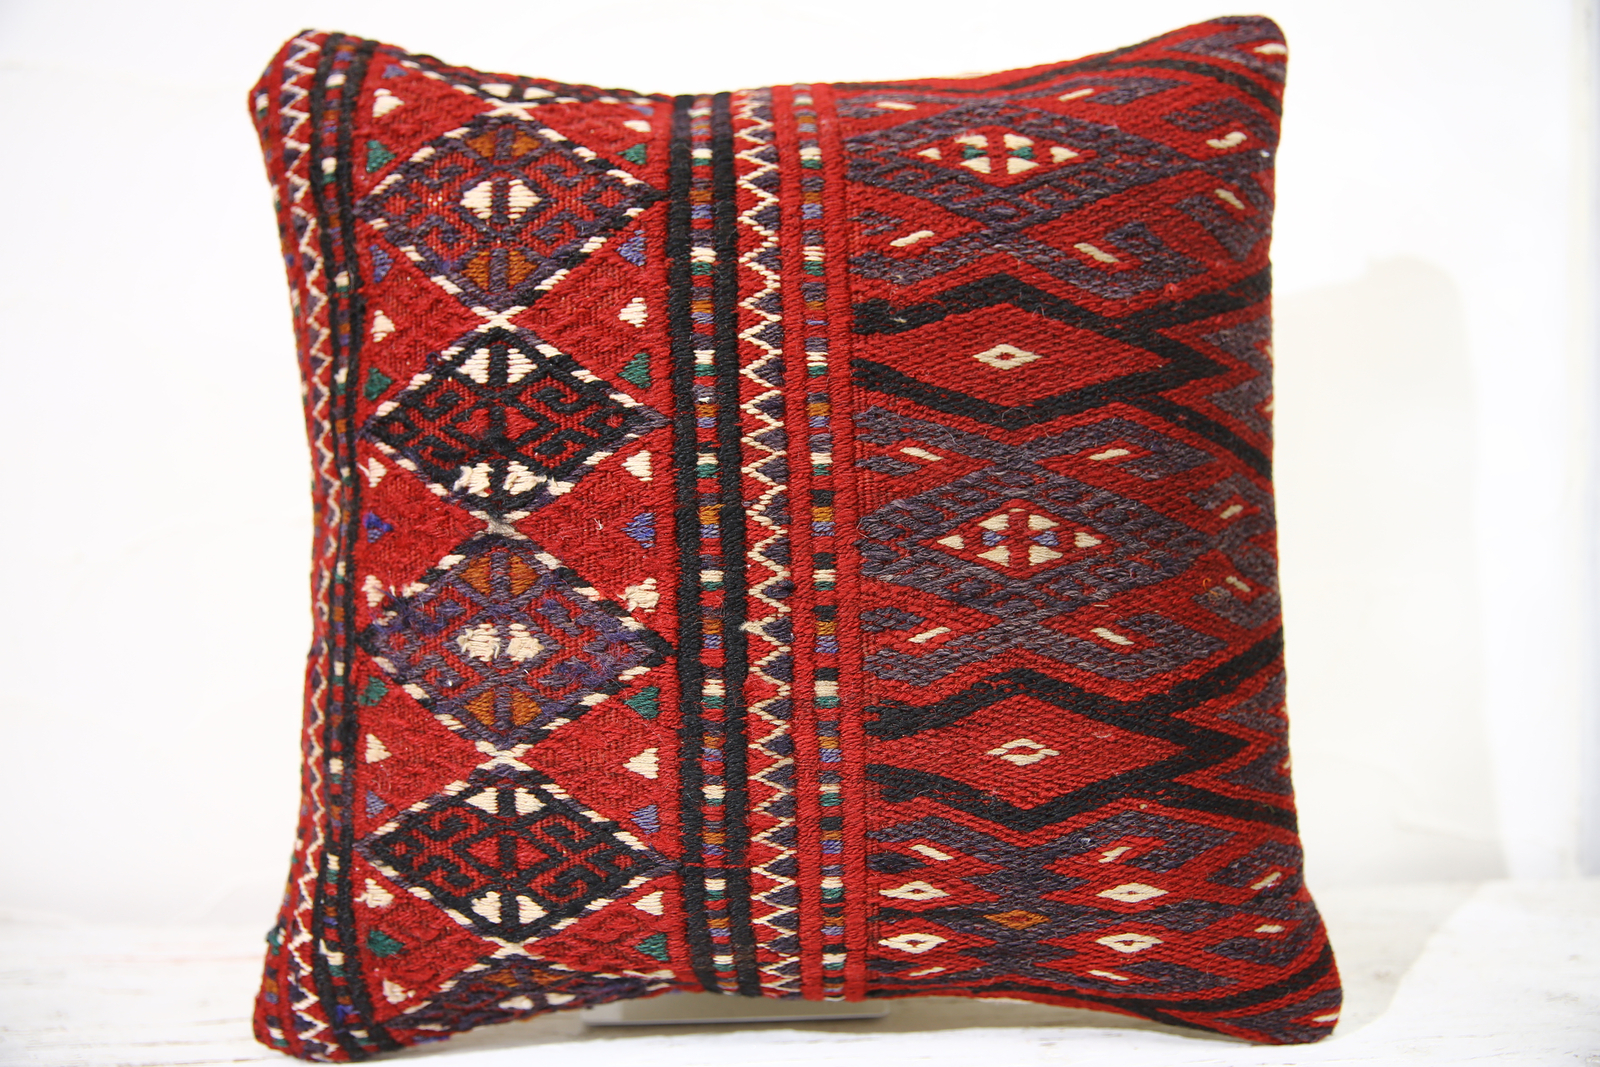 Kilim Pillows |16x16 | Decorative Pillows | 771 | Accent Pillows turkish pillow